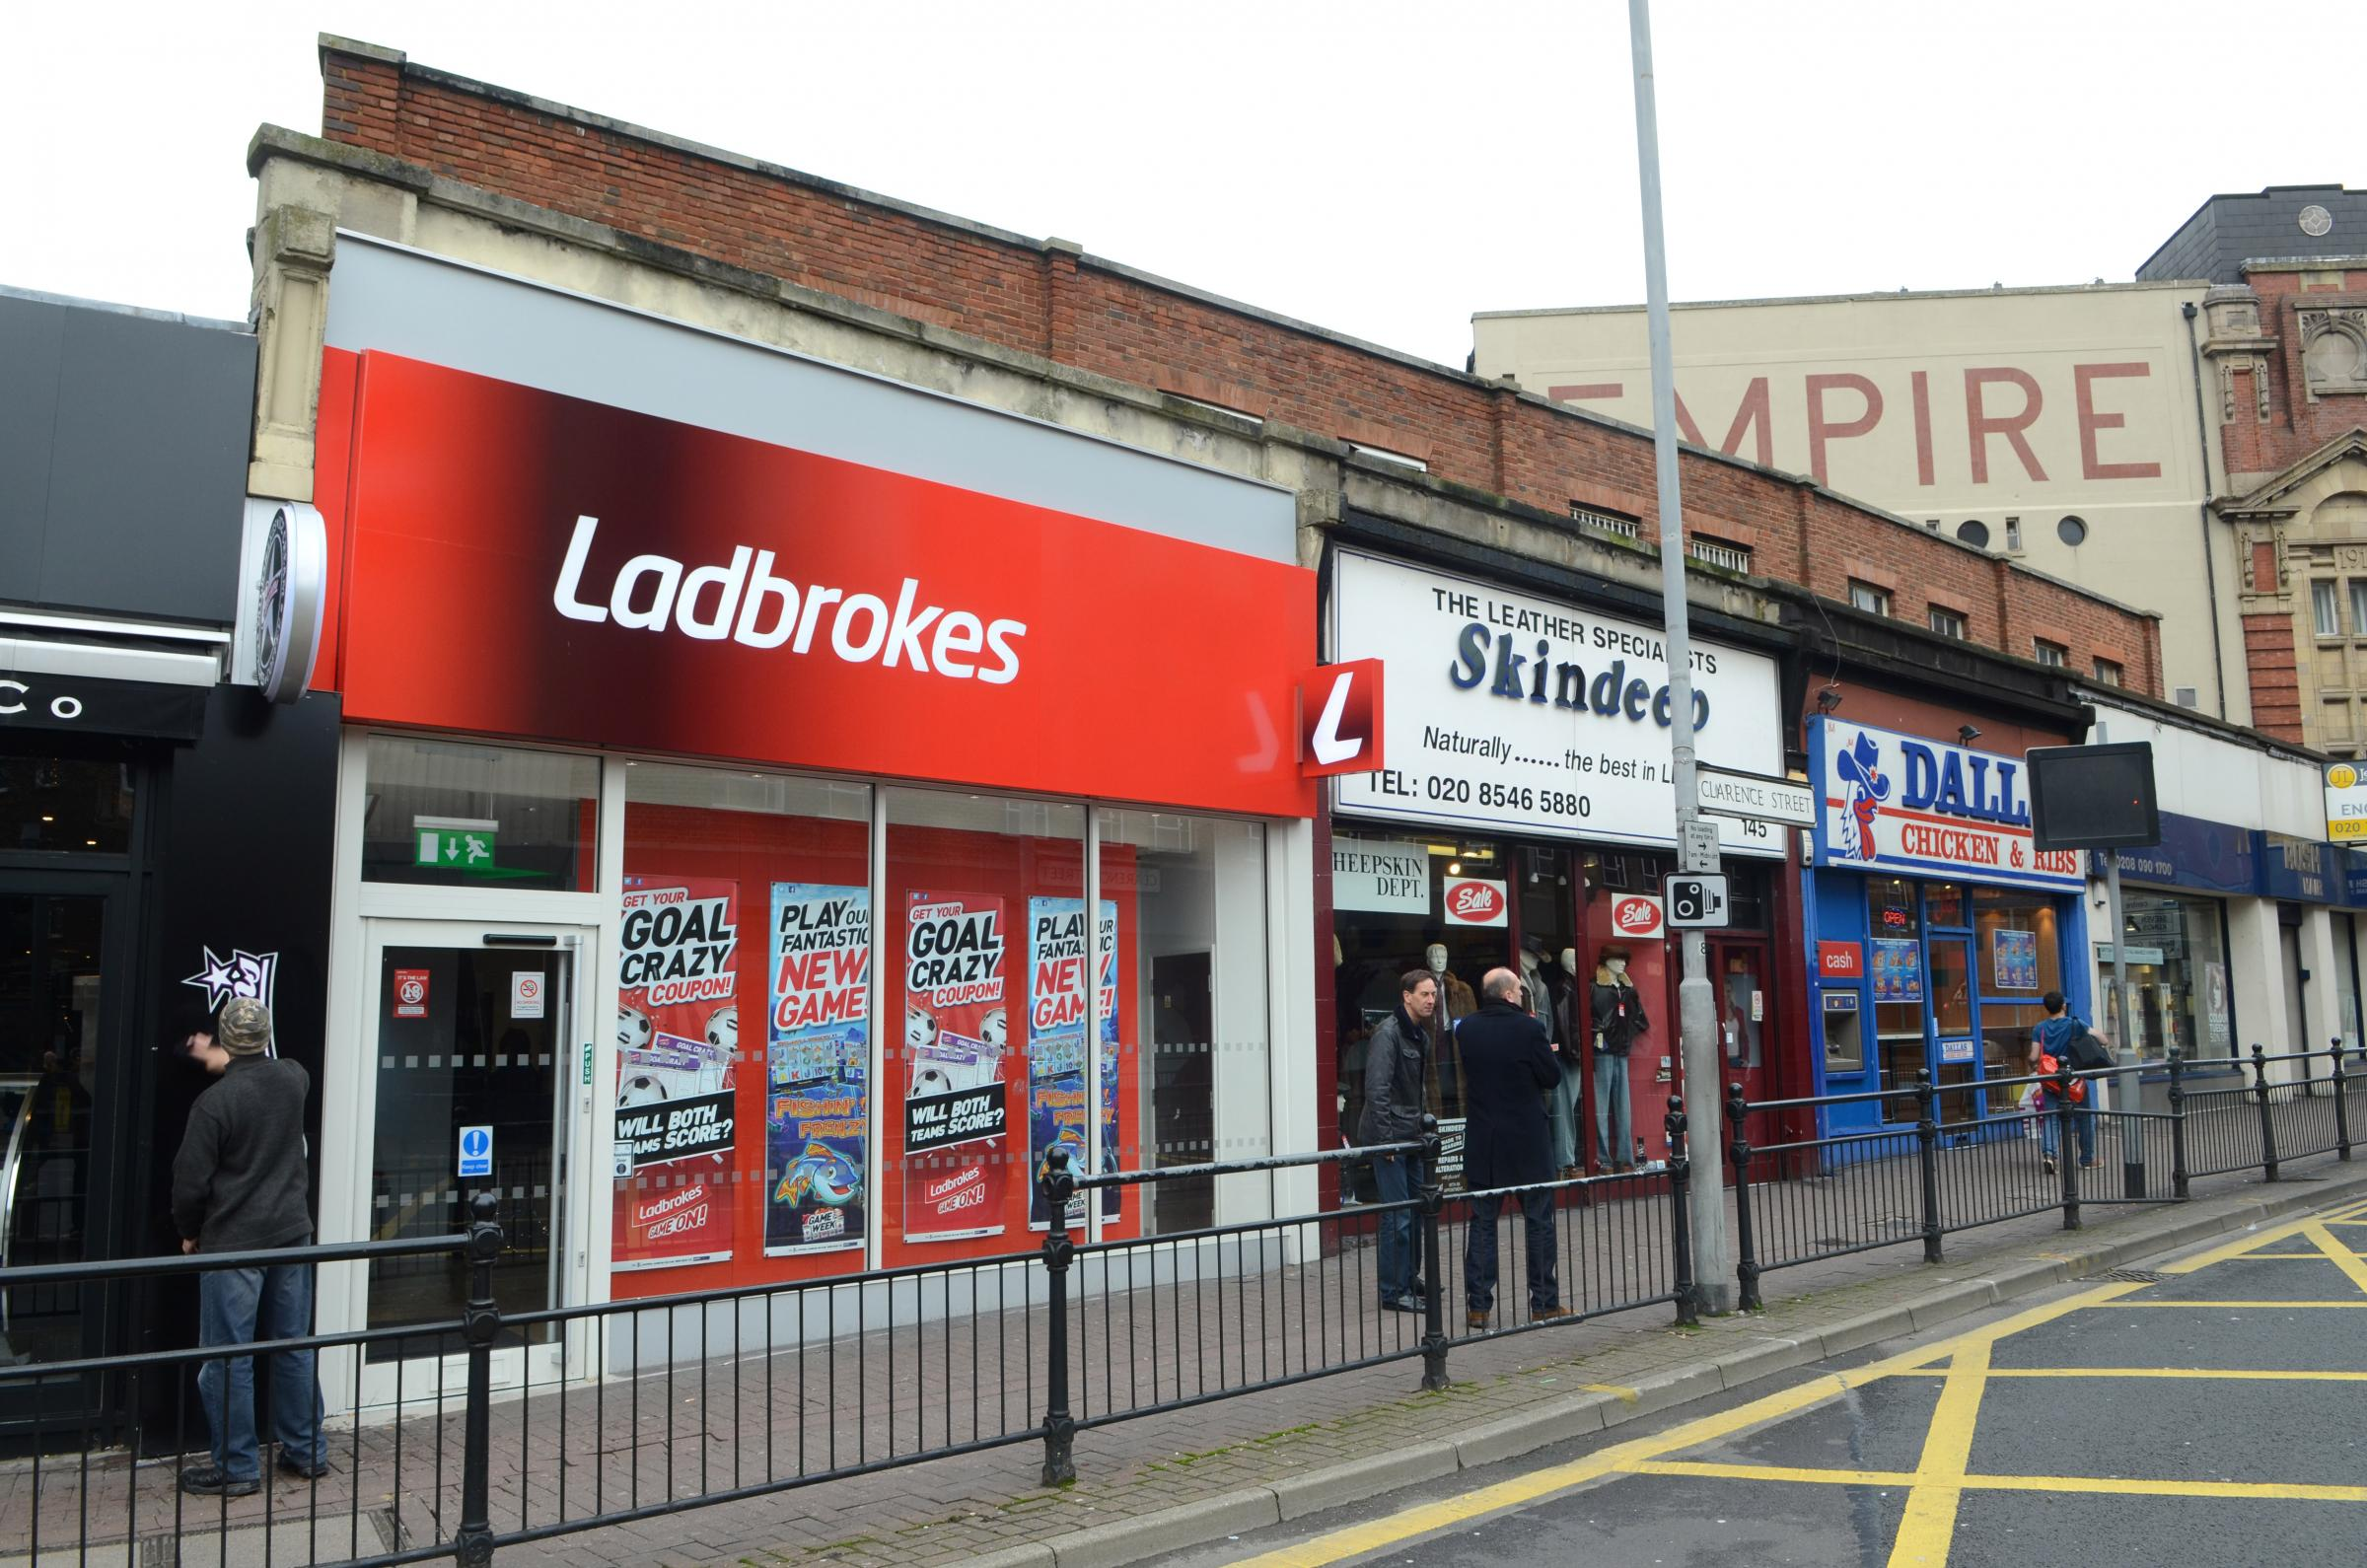 Ladbrokes in Kings